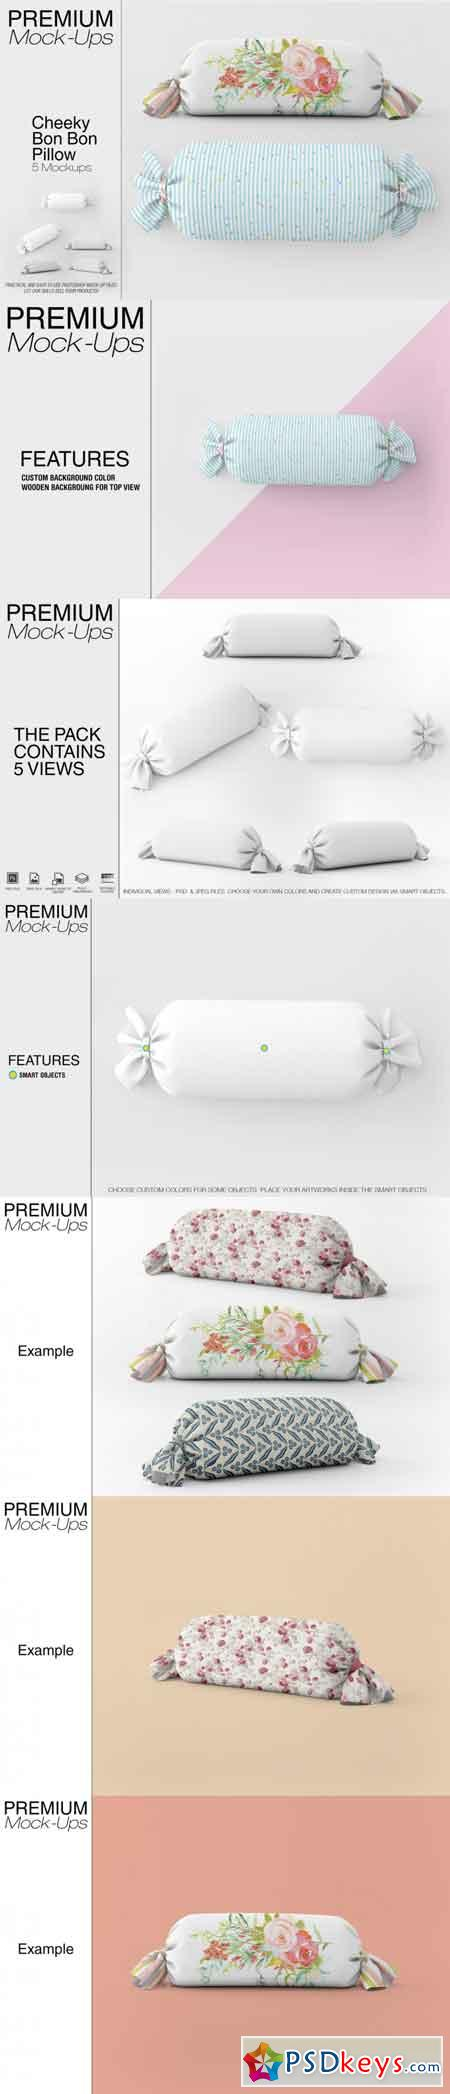 Cheeky Bon Bon Pillow Mockup Set 3451134